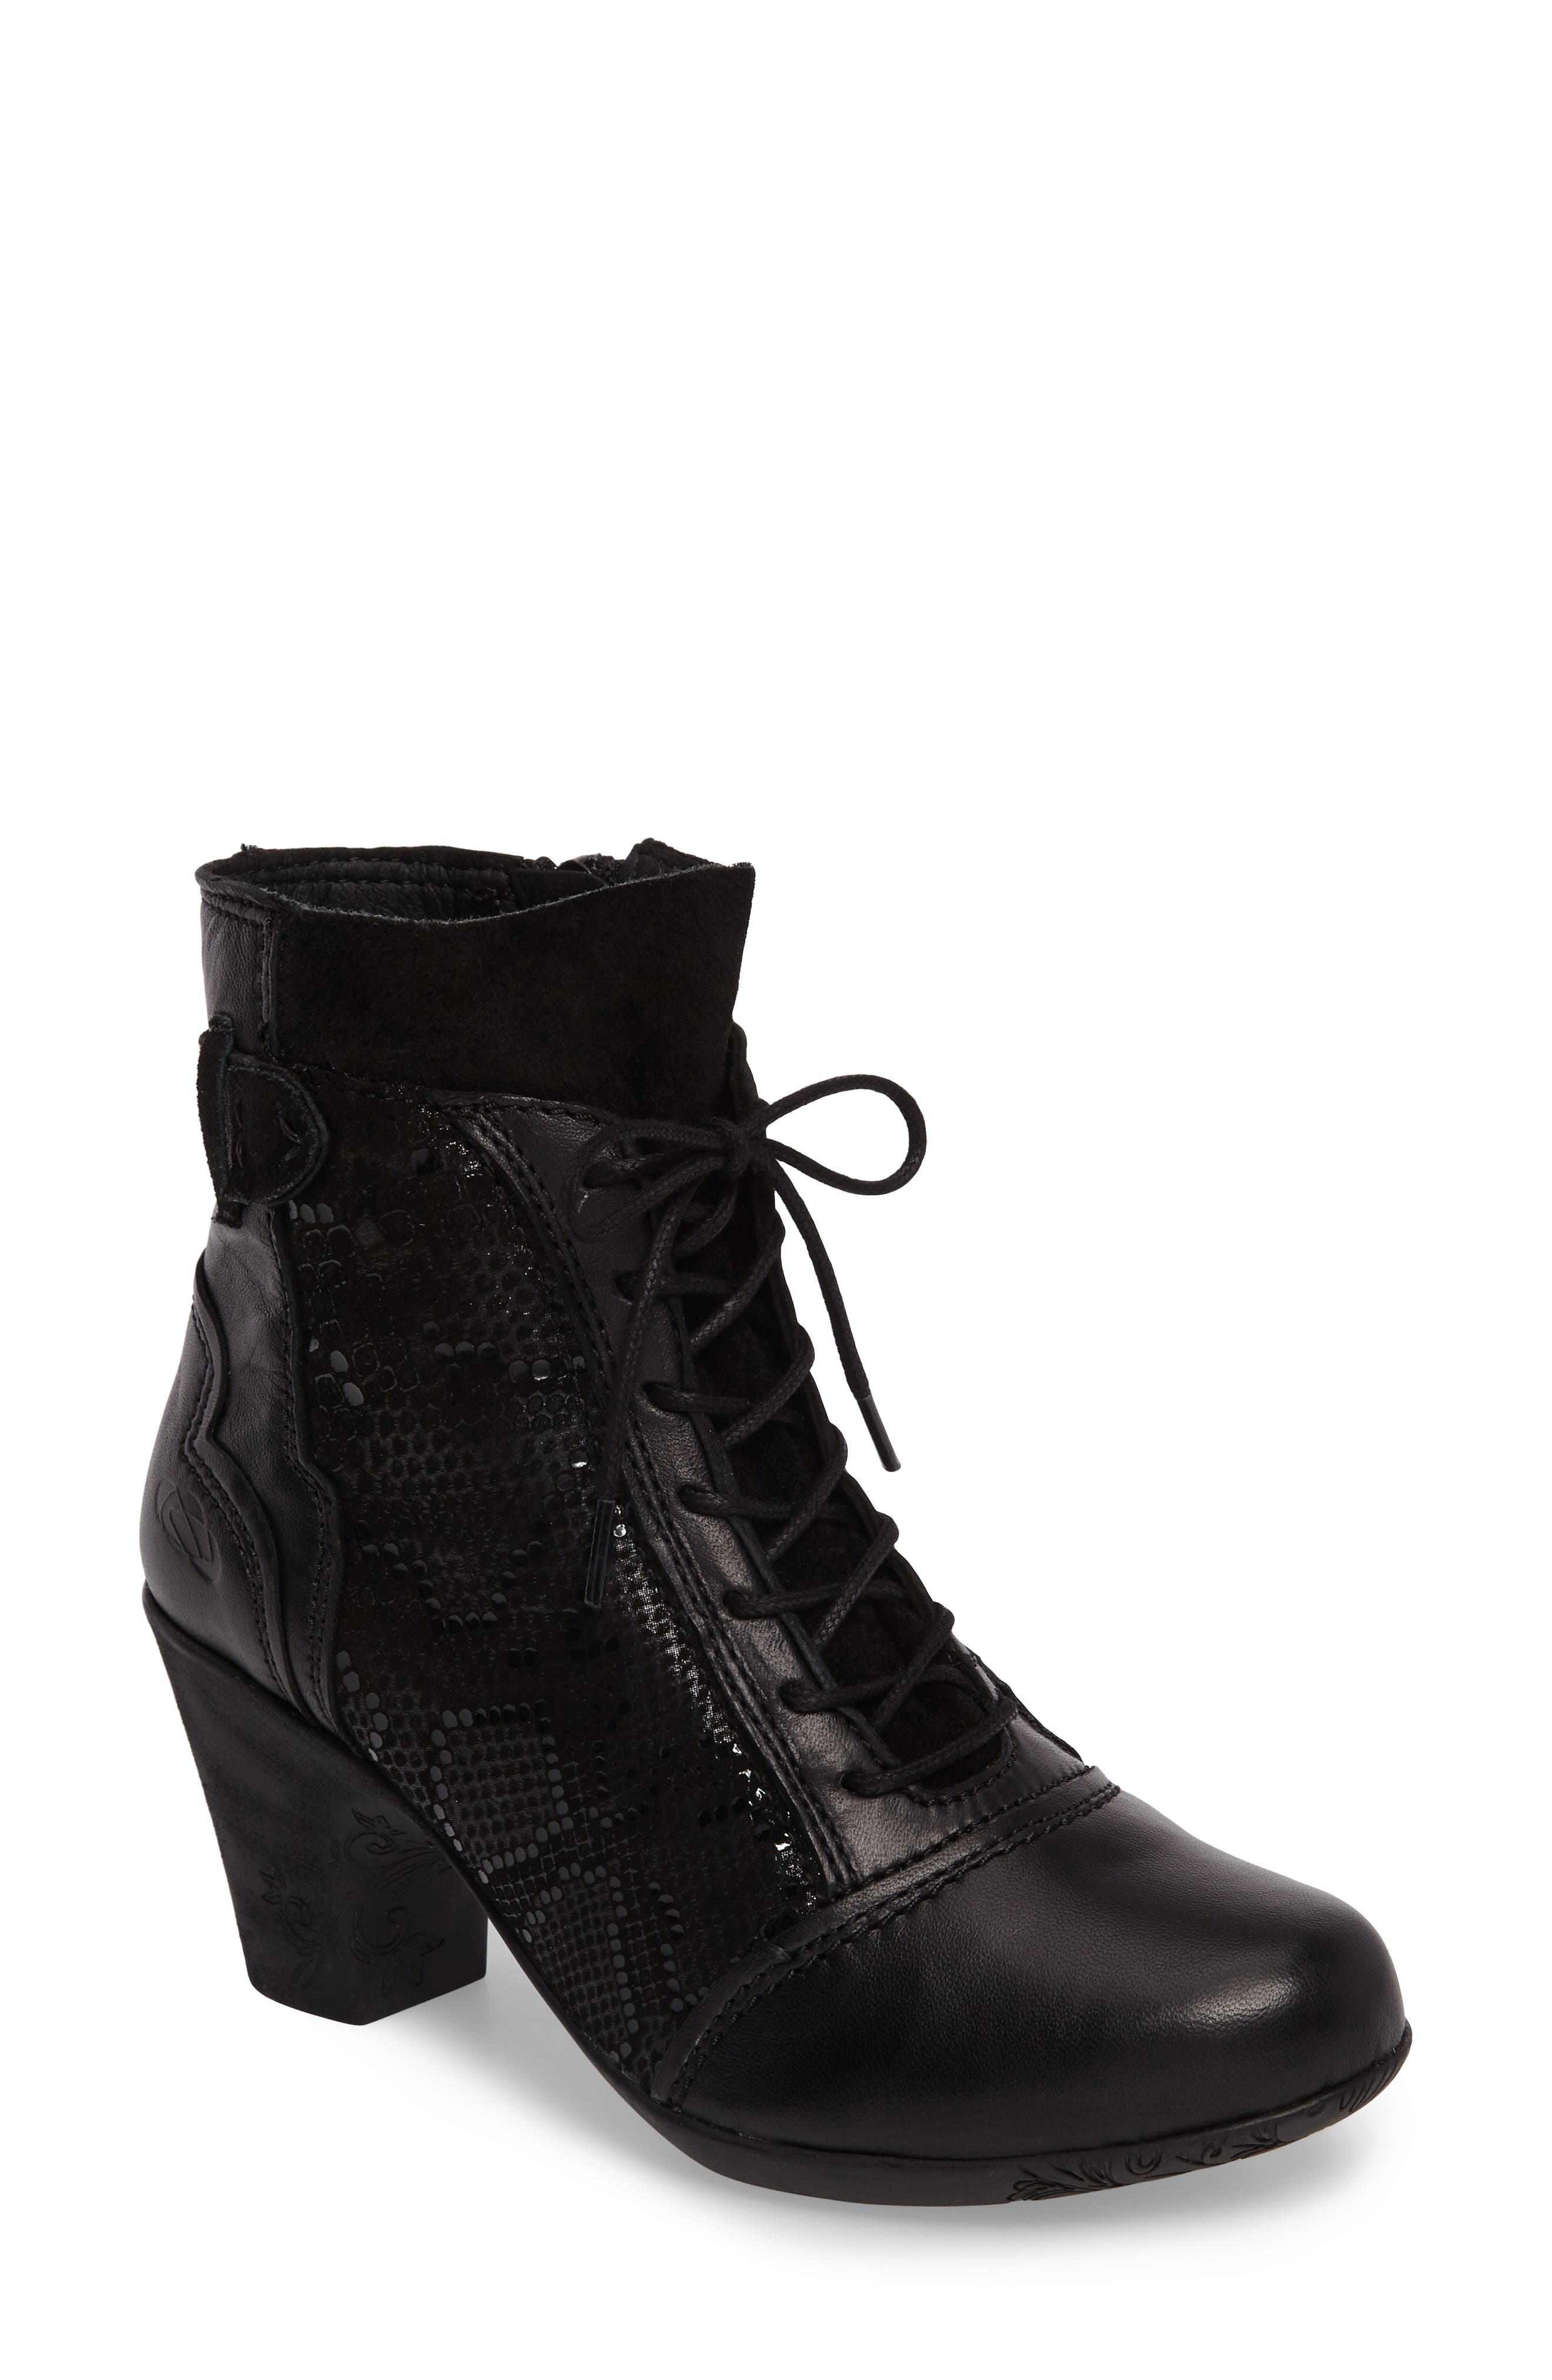 Jesse Fantasy Snake Texture Bootie,                         Main,                         color, Black Leather